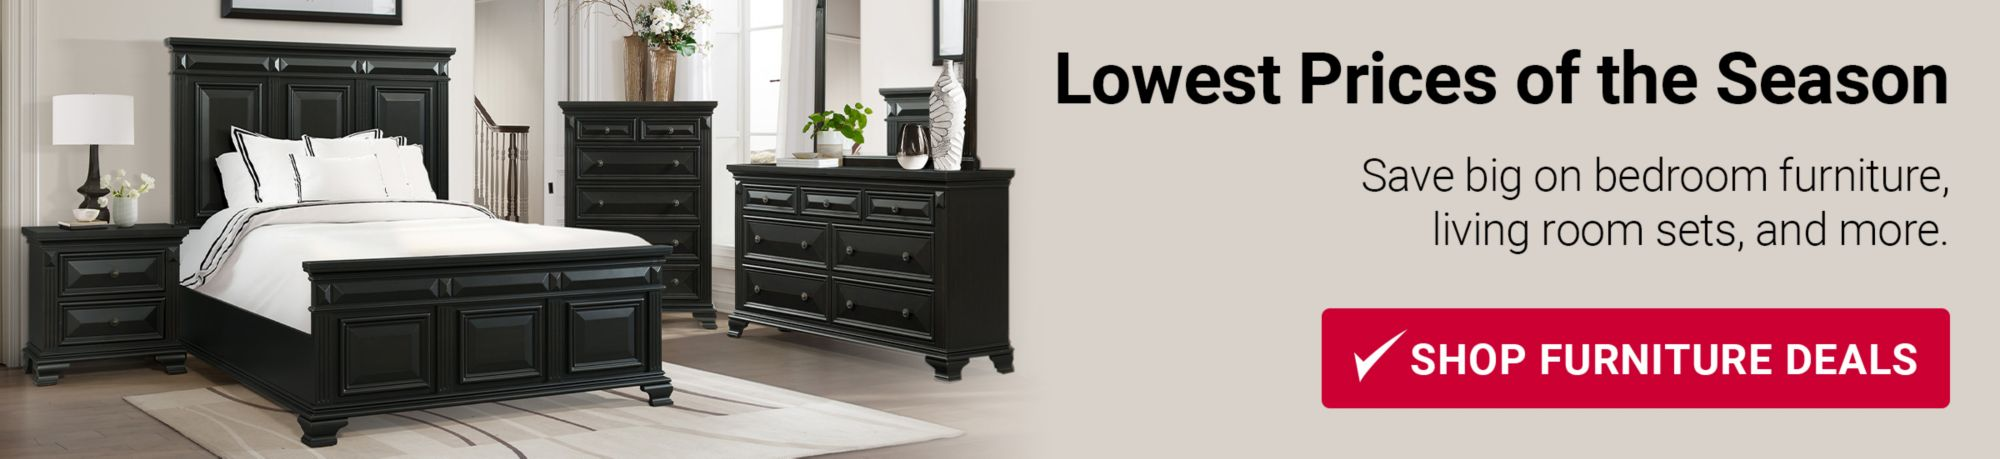 Lowest Prices of the Season. Save big on bedroom furniture, living room sets, and more. Click to shop now.